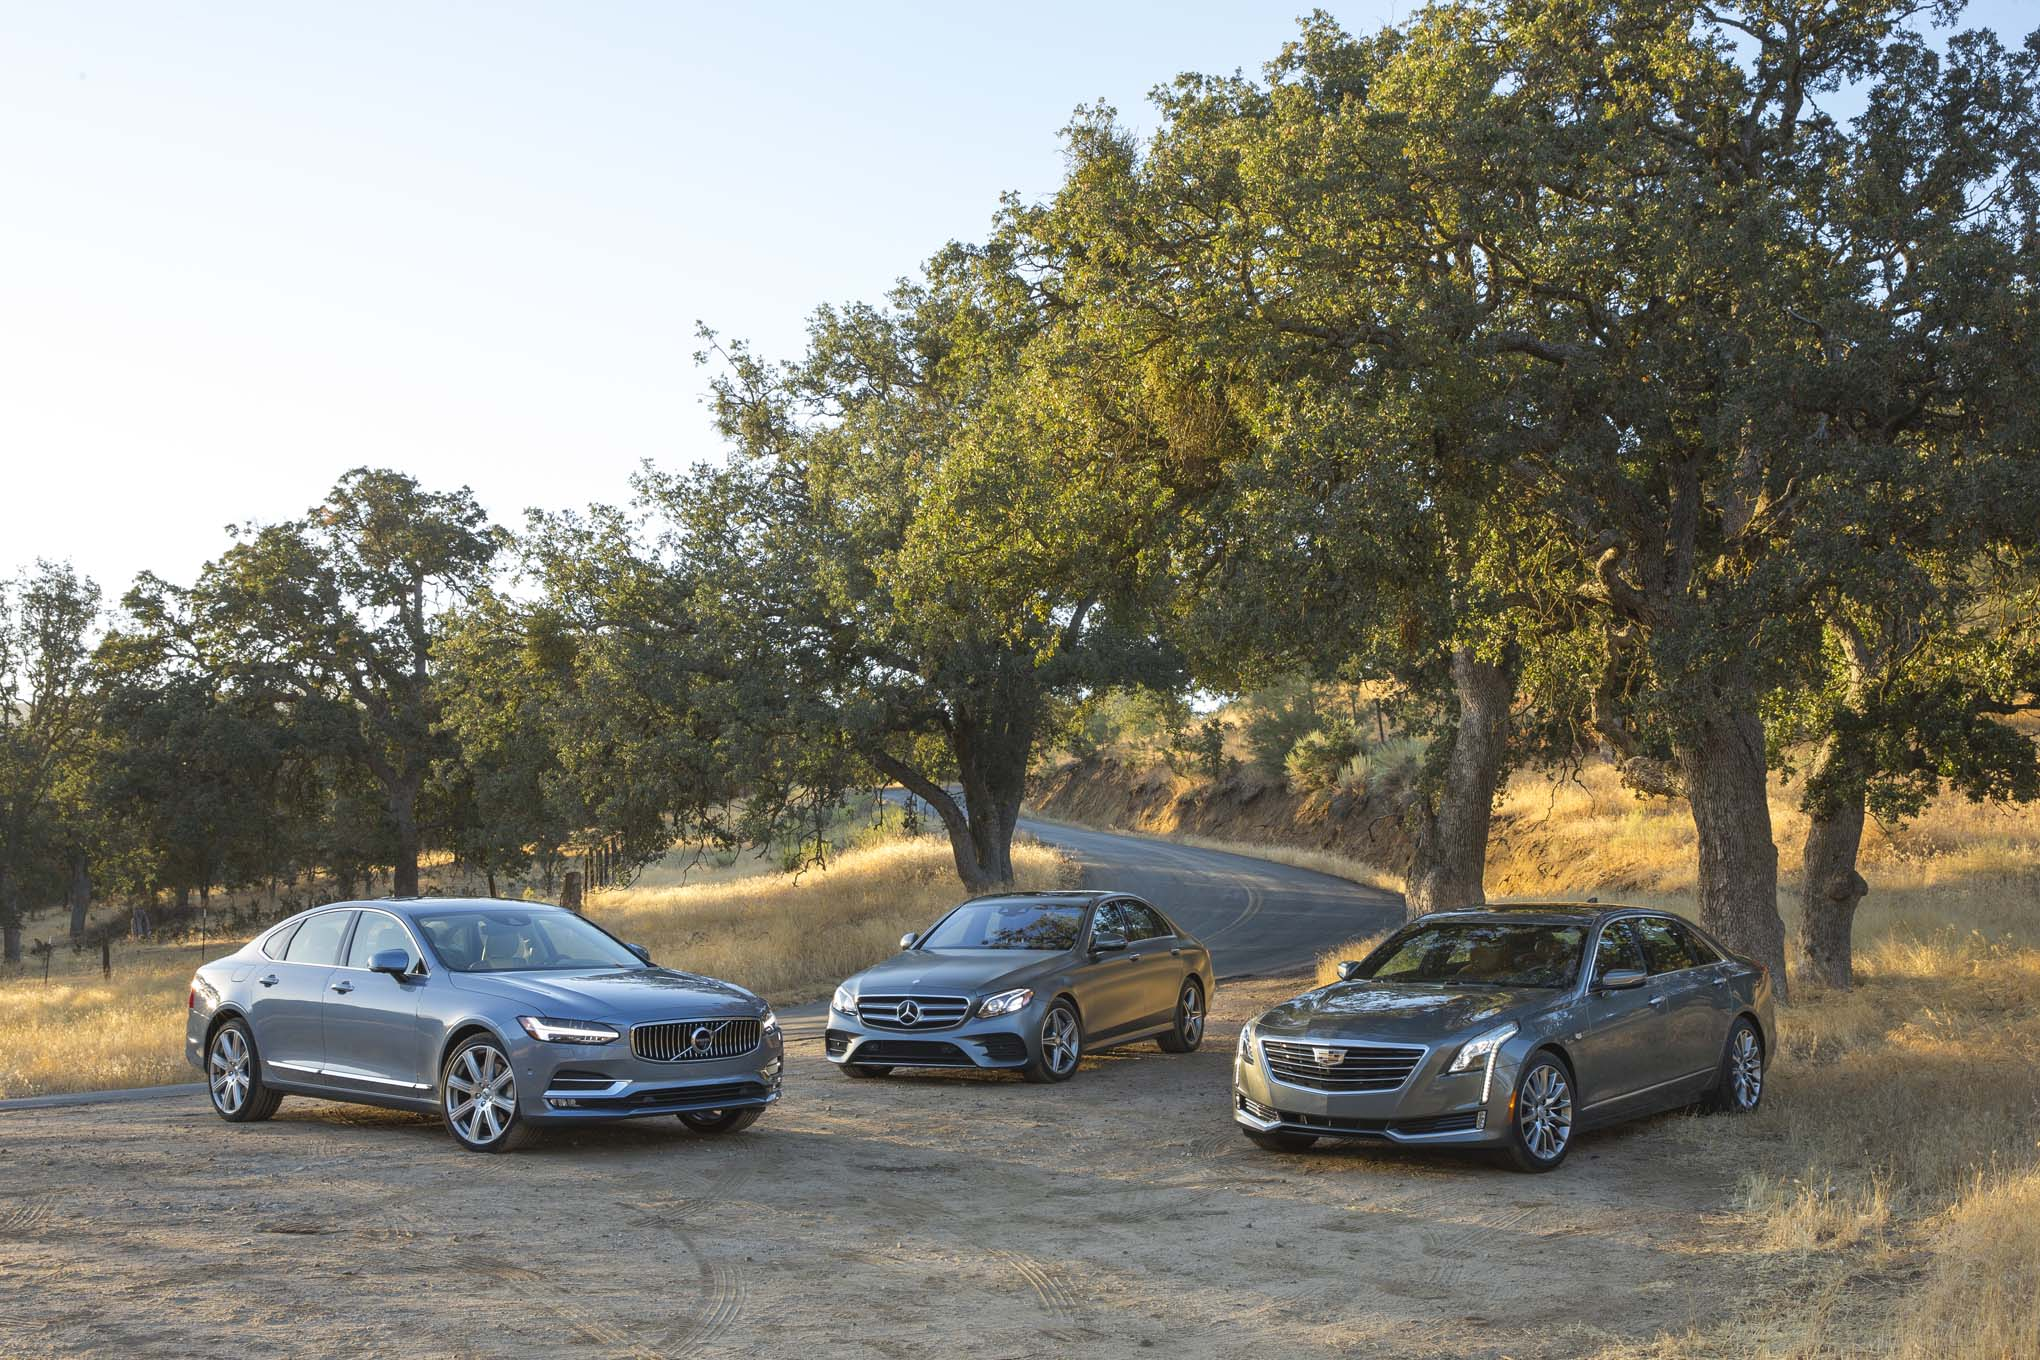 Cadillac CT6 vs Mercedes Benz E300 vs Volvo S90 T6 front three quarter